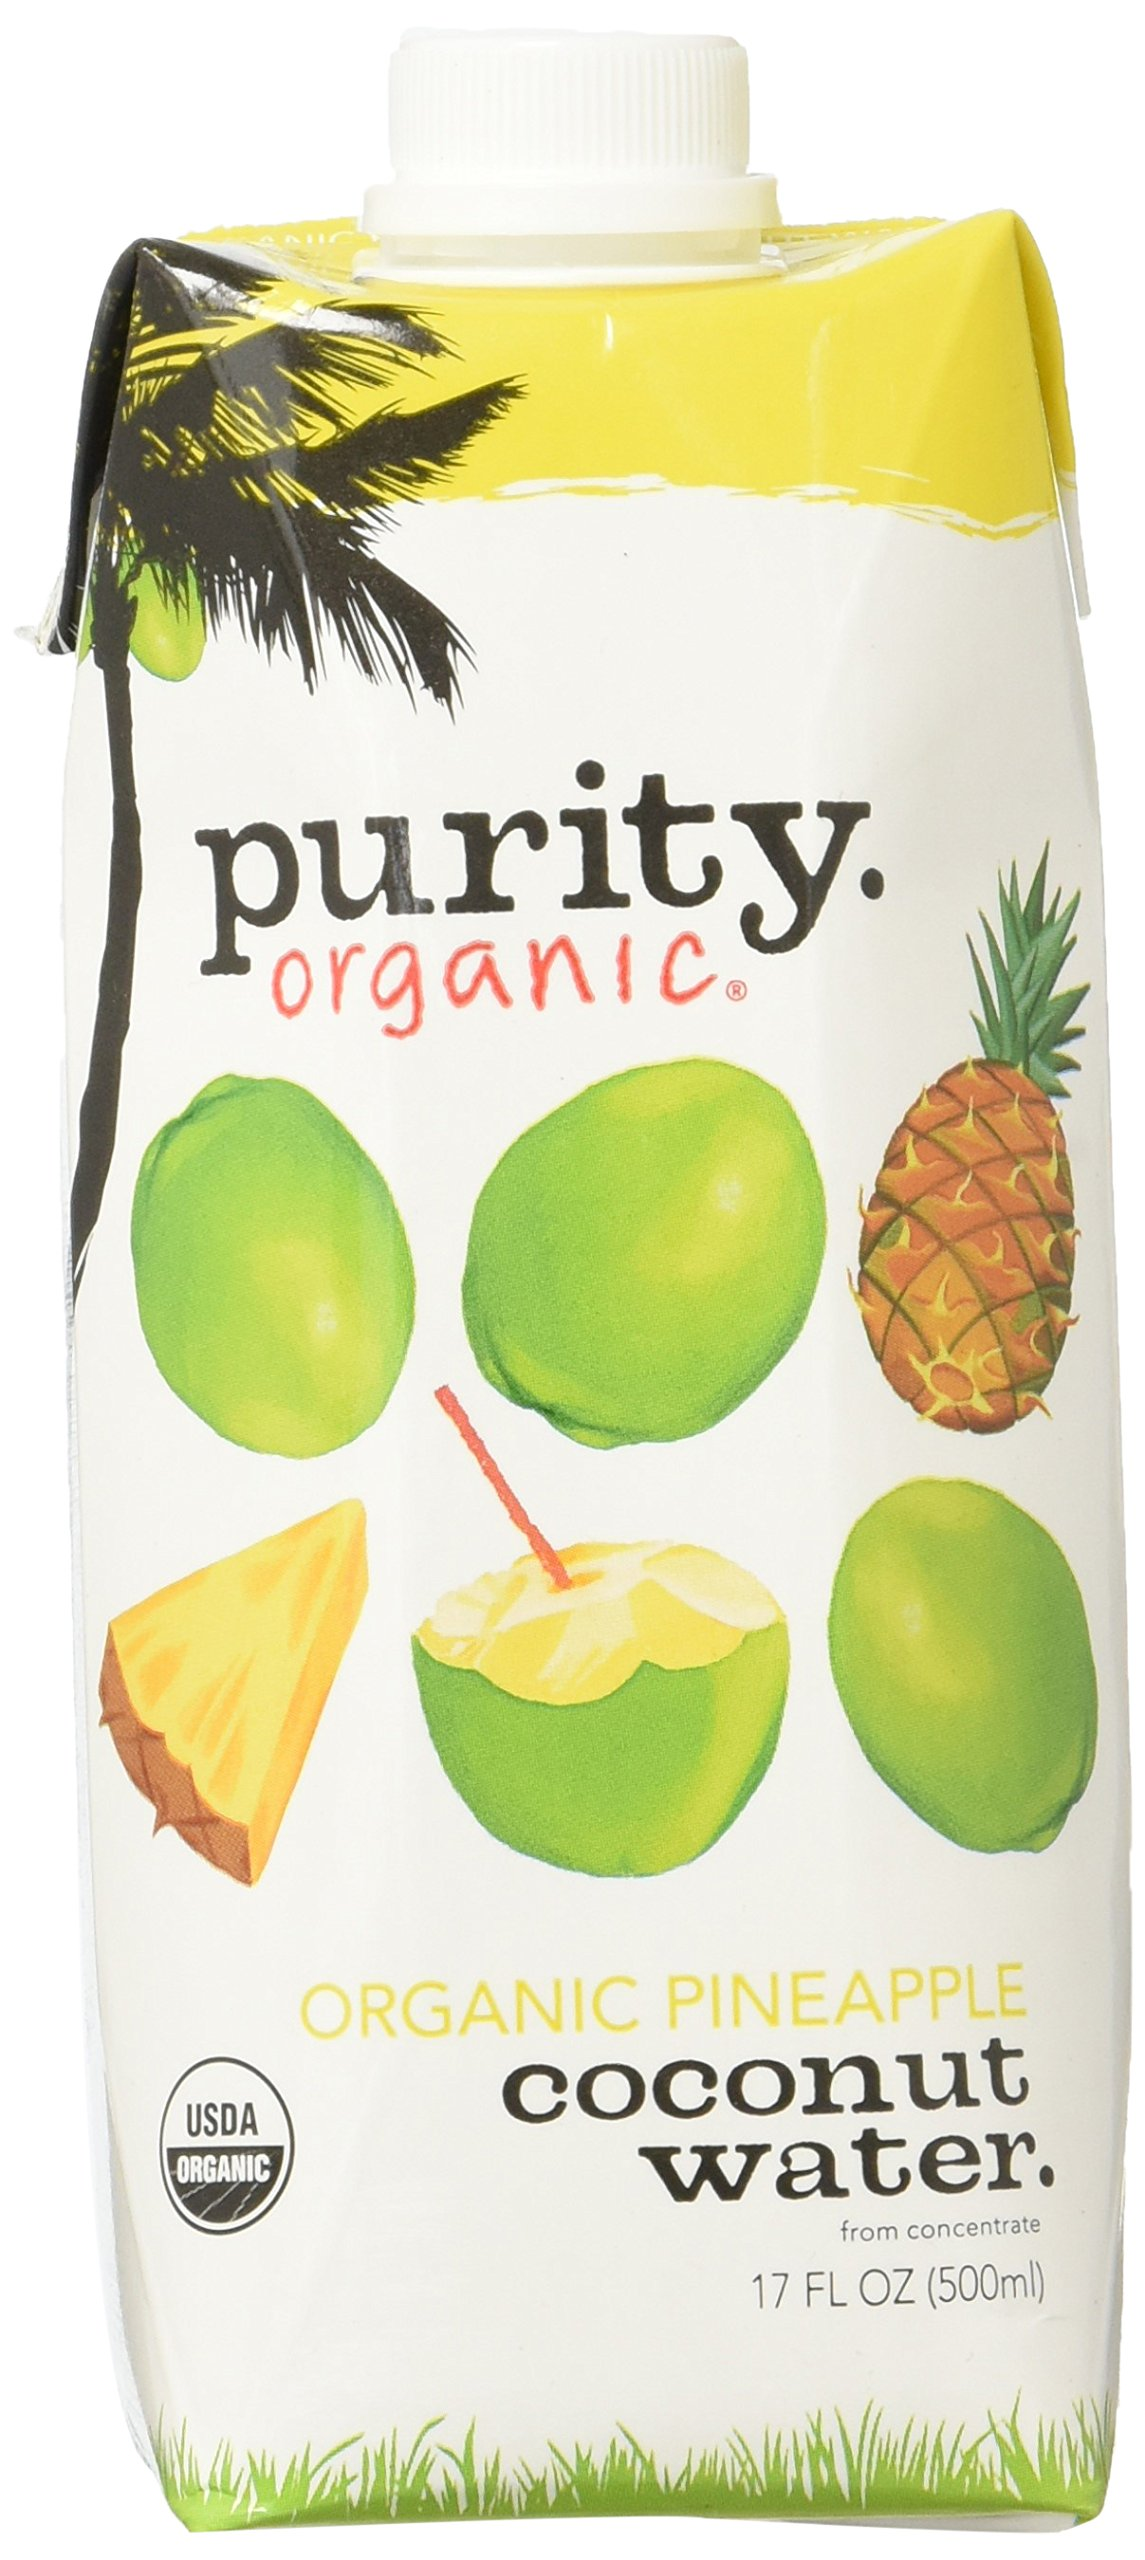 Purity Organic Coconut Water, Pineapple, 17 Ounce, 12 Count